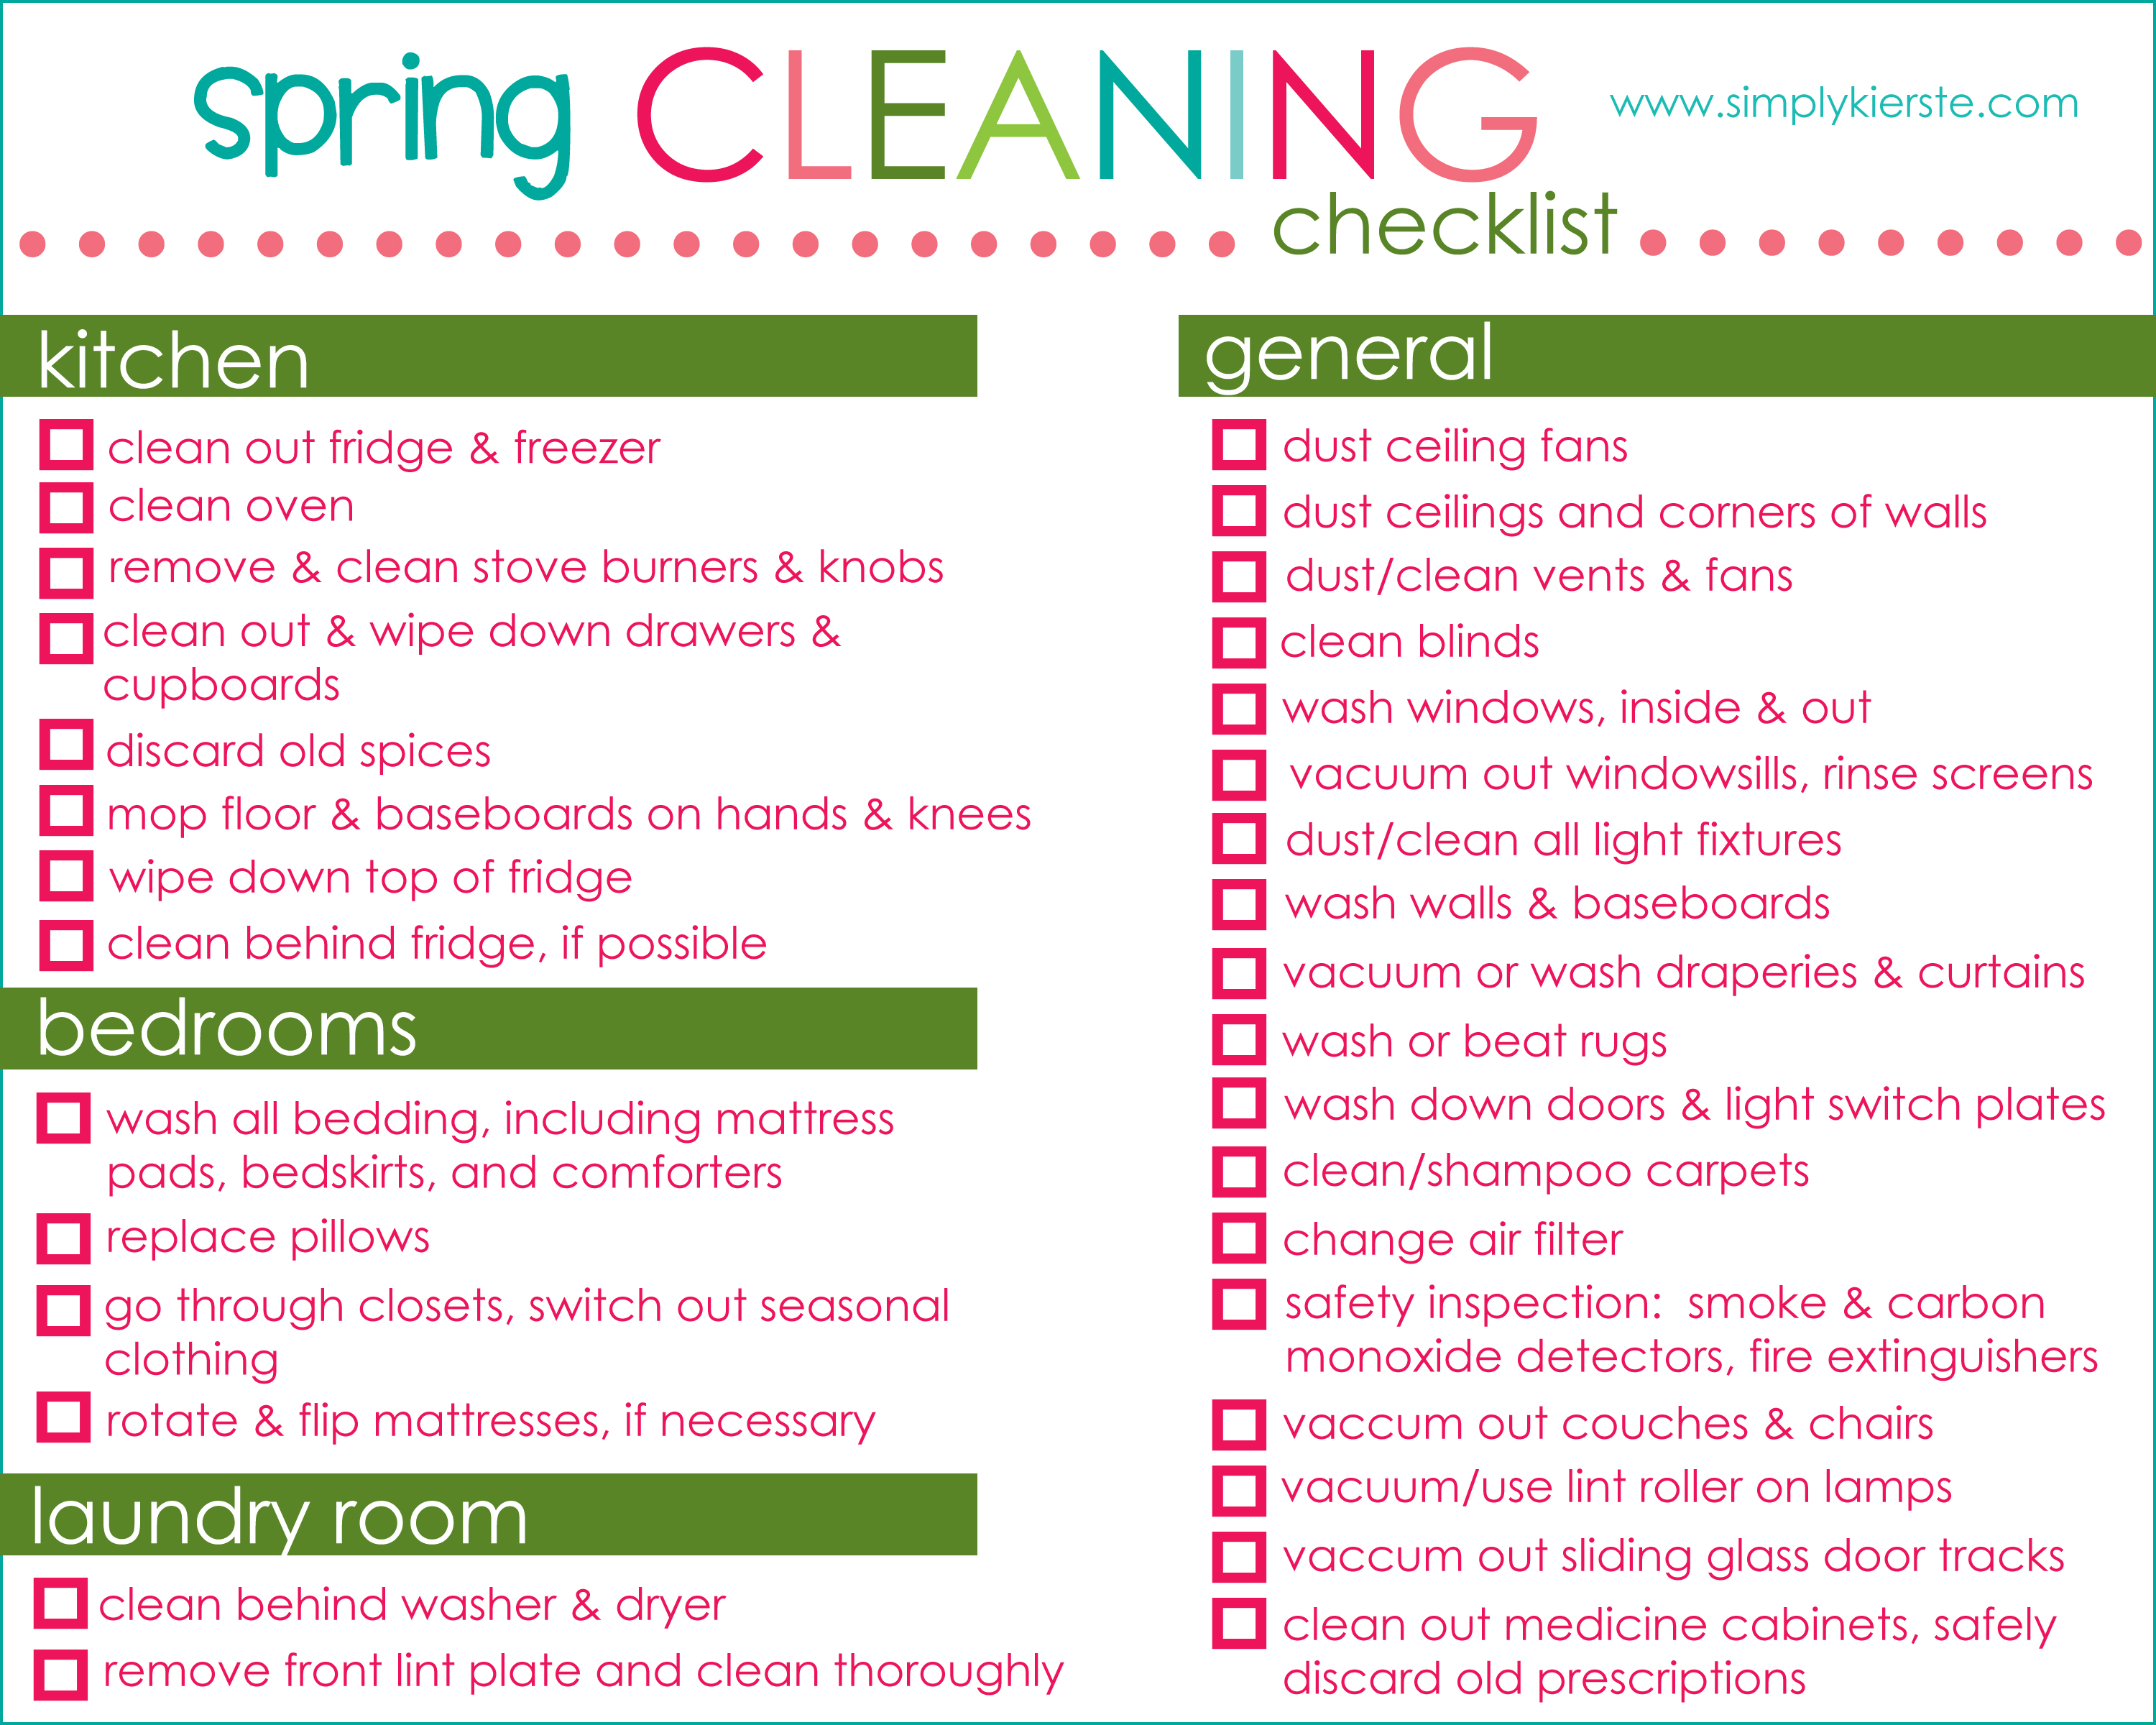 Spring Printable Images Gallery Category Page 1